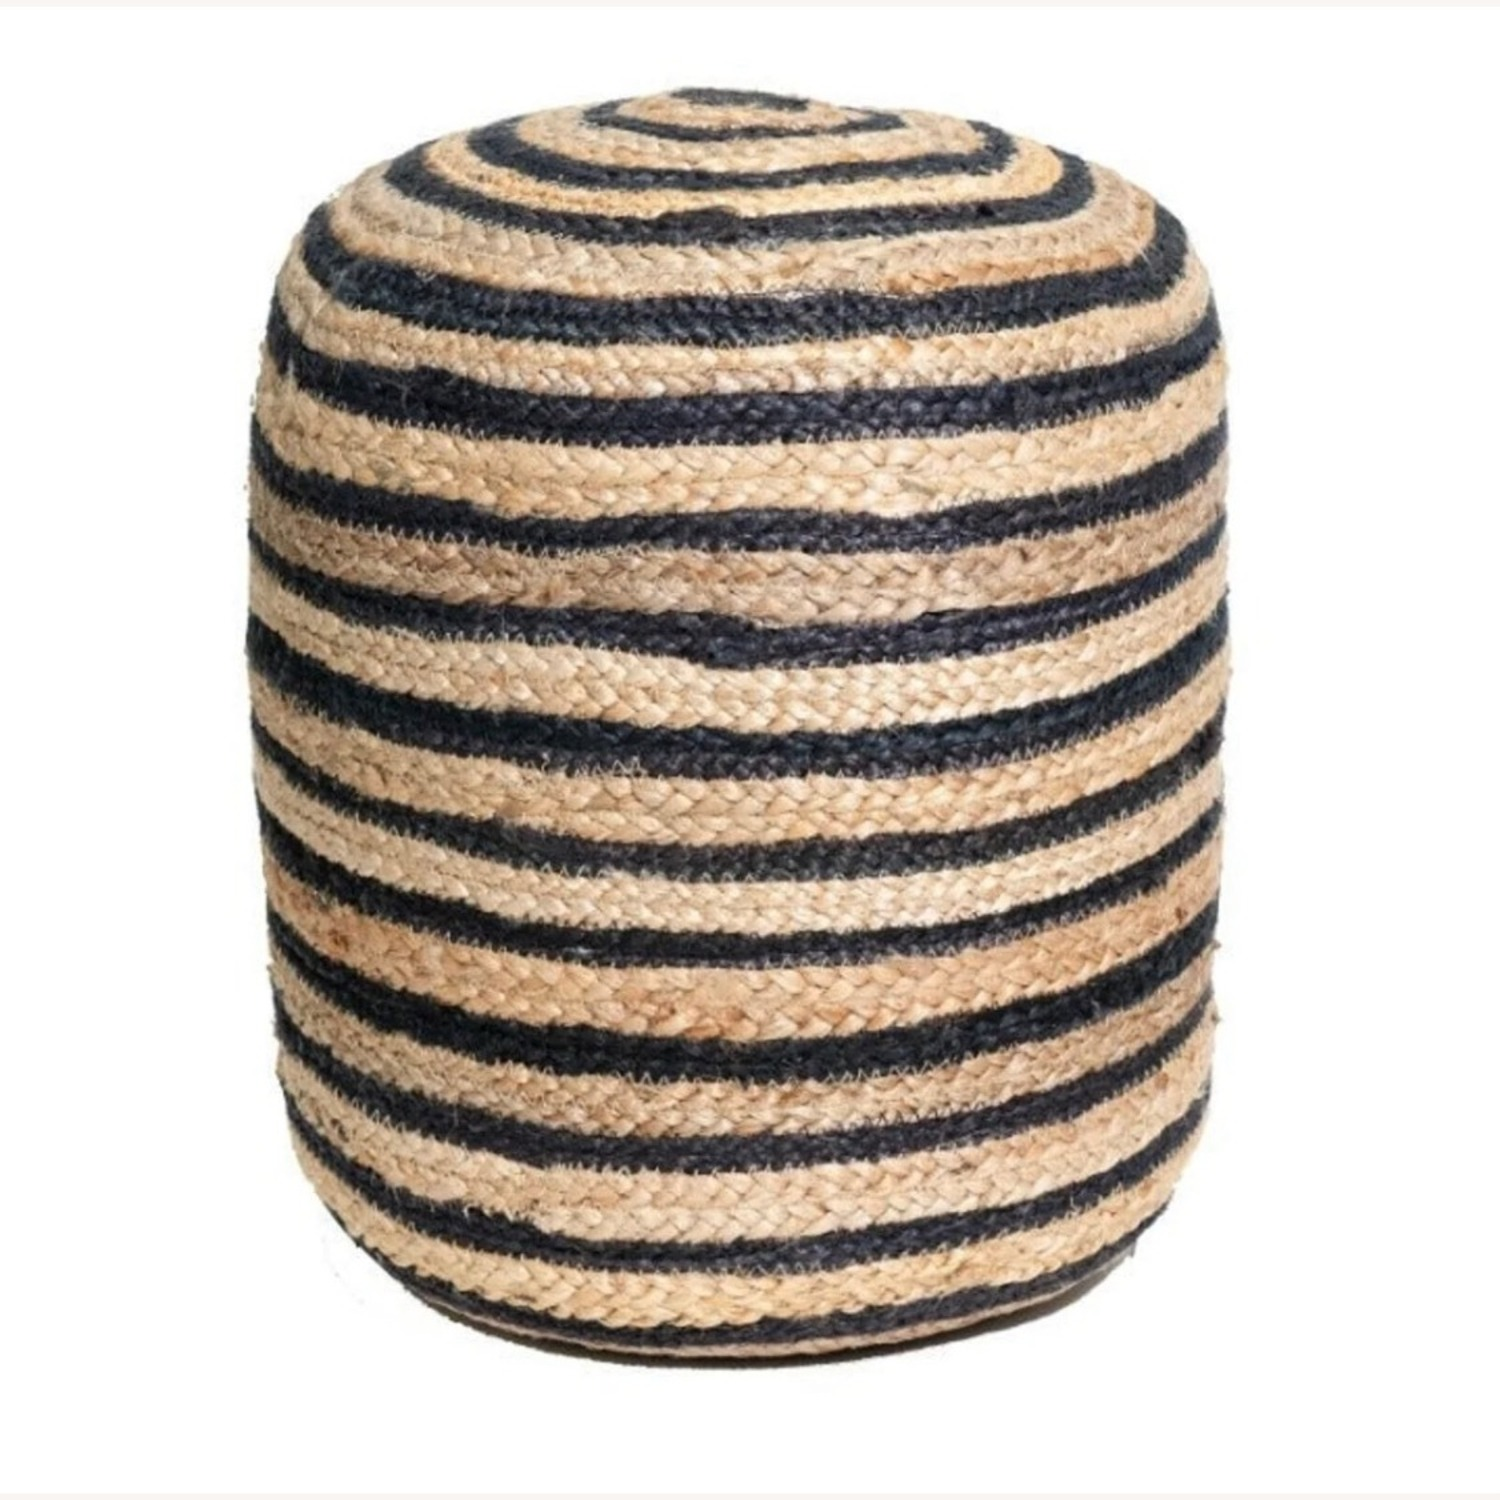 Hand Made Jutee Braided Multi-Coloured Pouf - image-4